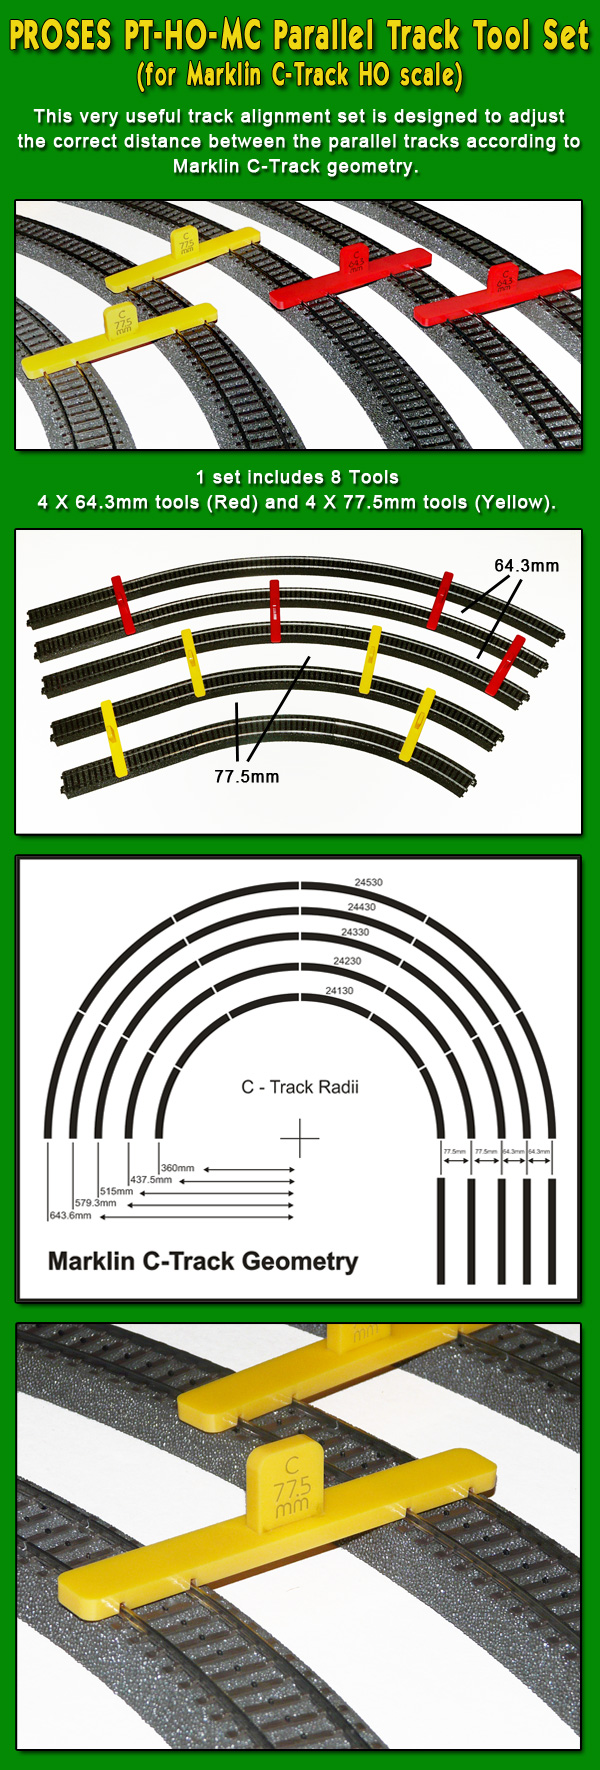 Ho scale track laying tools australia